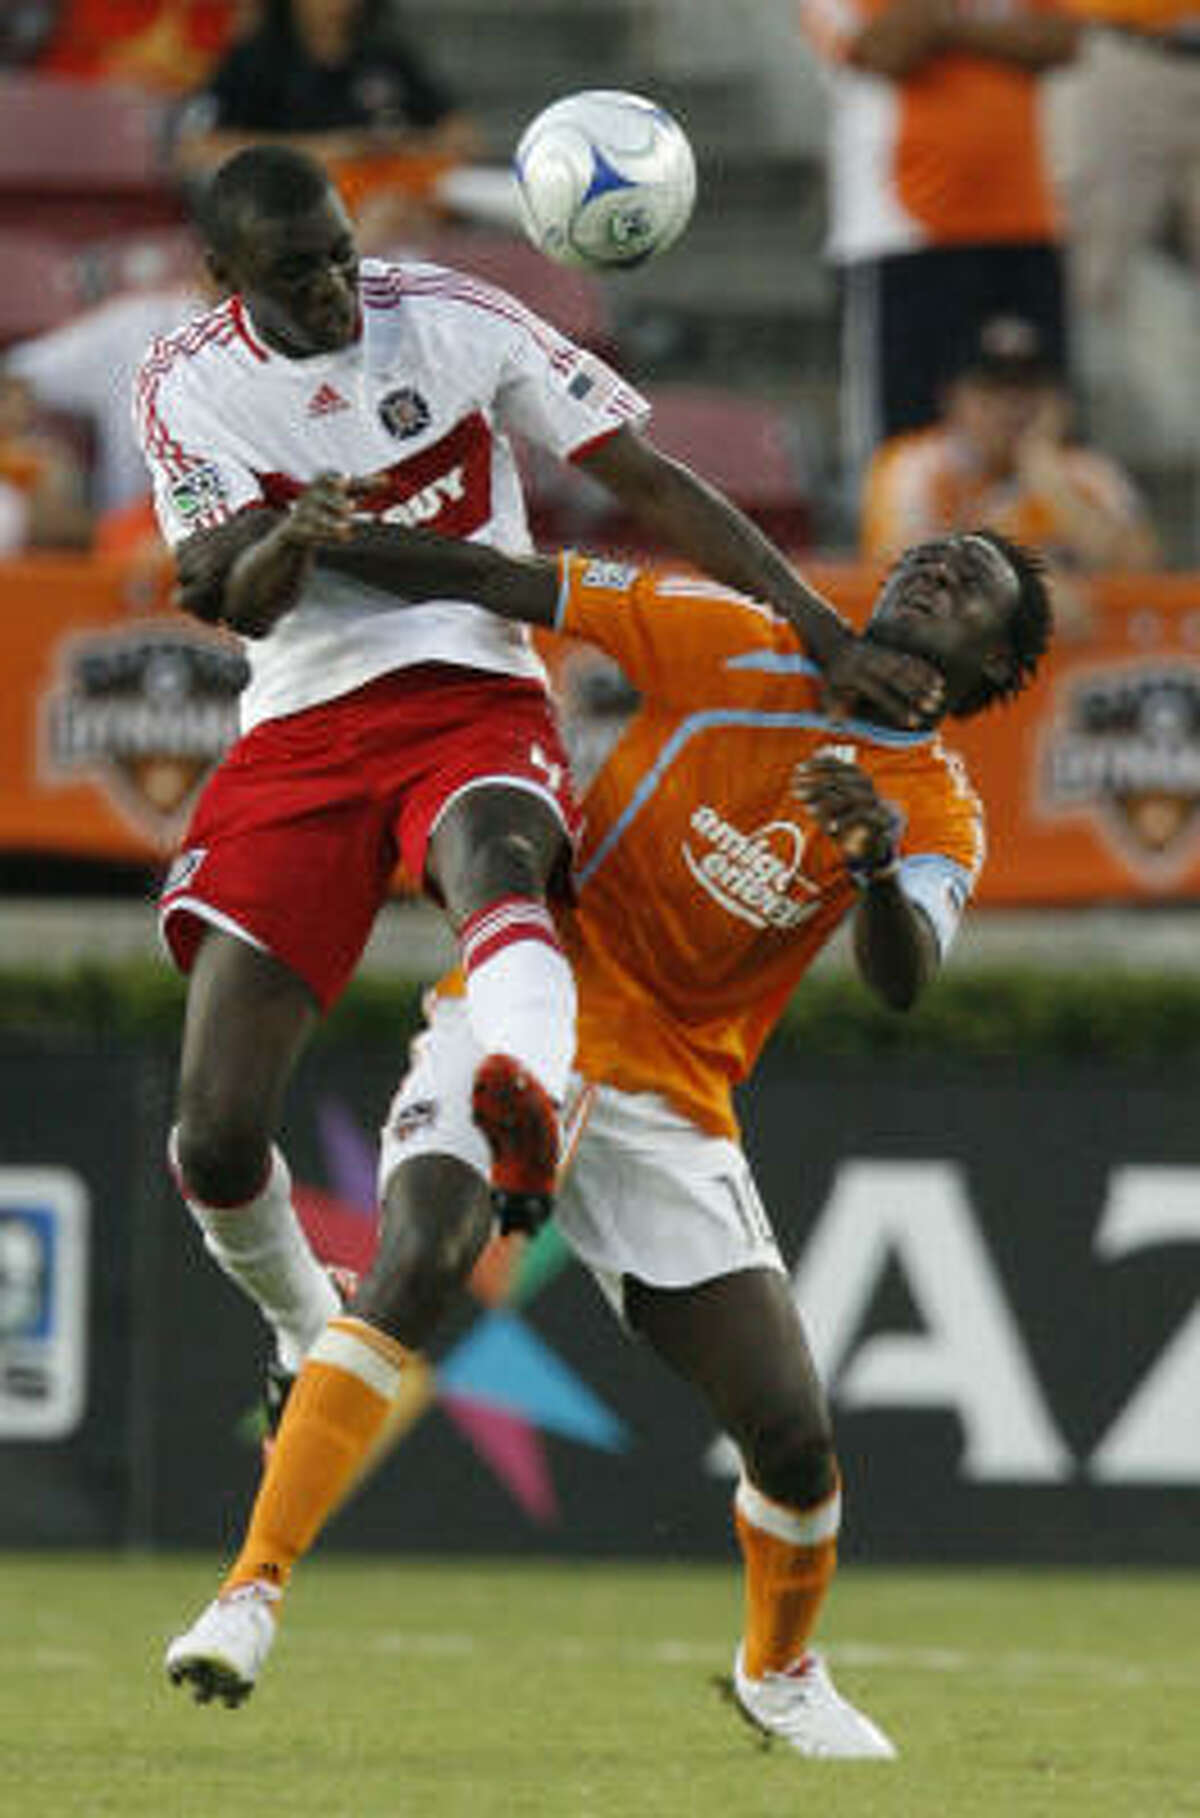 Aug. 9: Dynamo 3 - Chicago Fire 2 Dynamo forward Kei Kamara, right, and Chicago Fire defender Bakary Soumare battle for the ball during the first half.